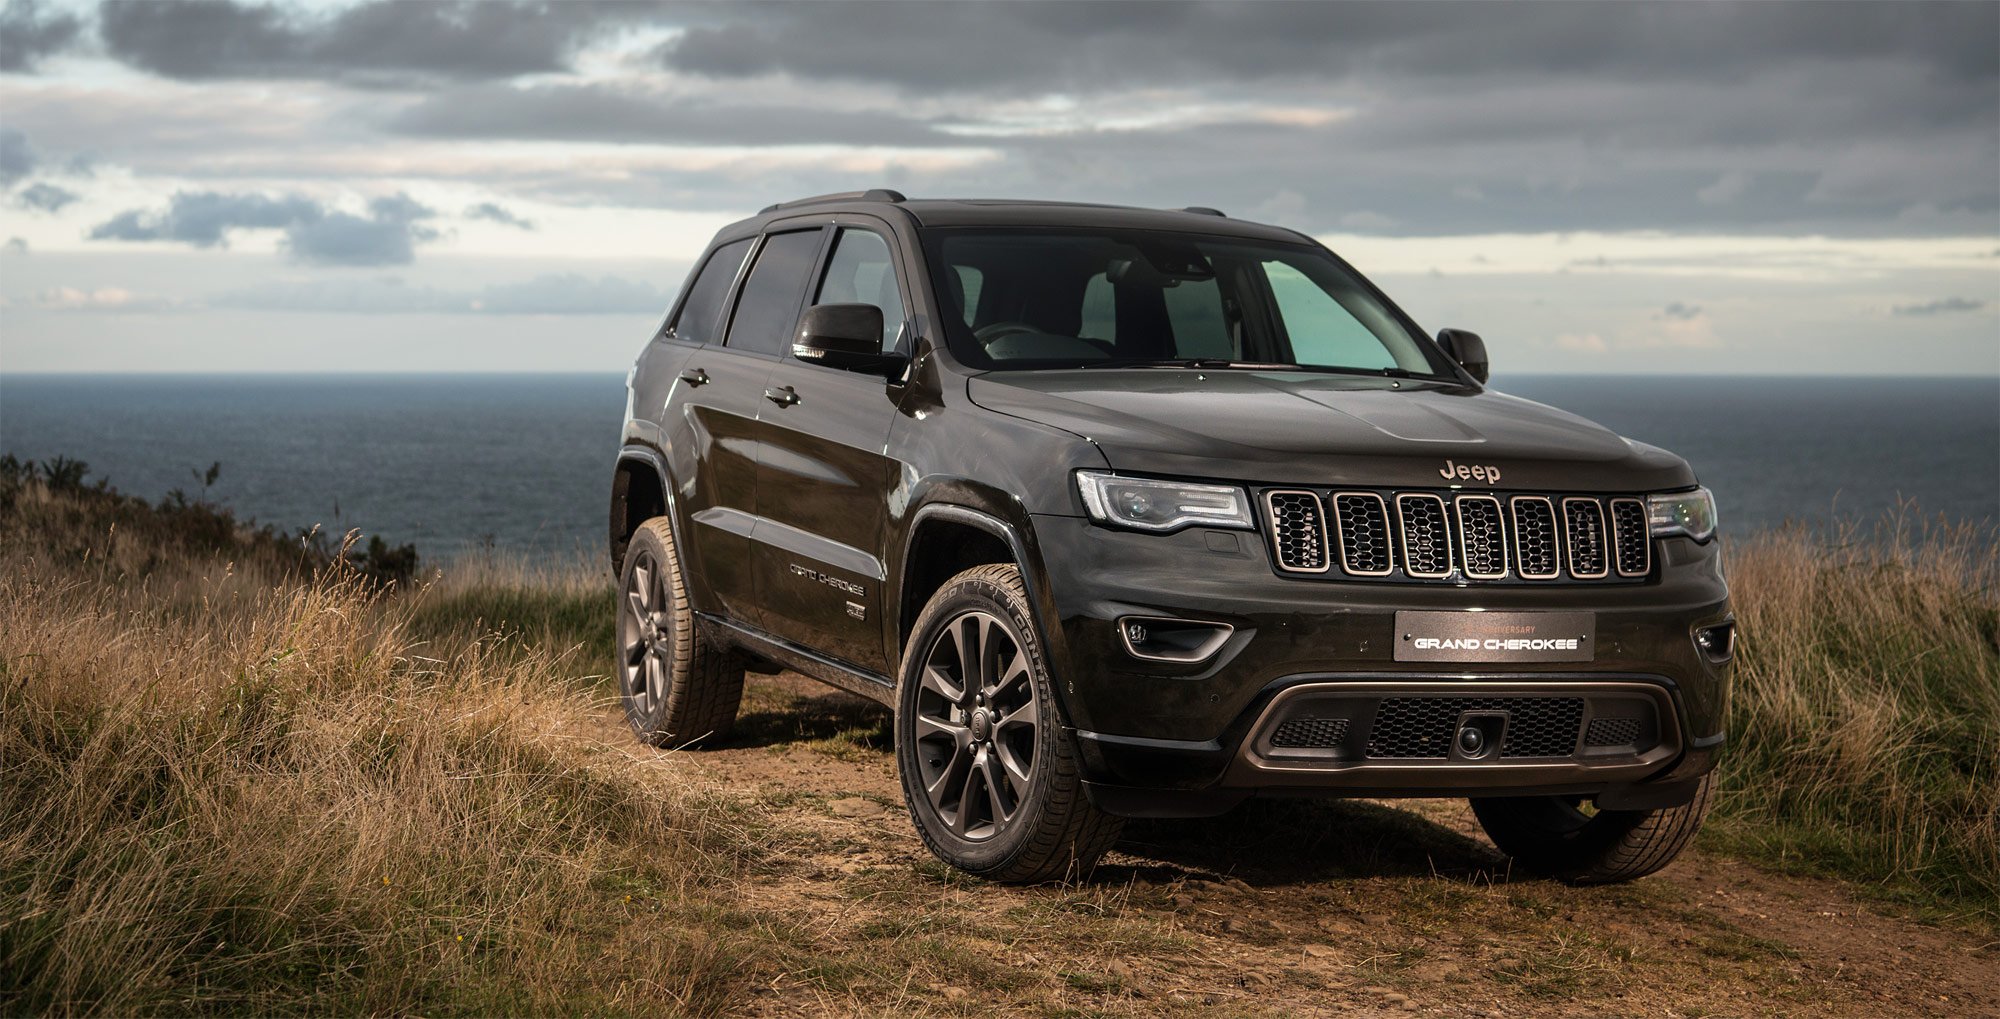 Celebrating Jeep's 75th Anniversary On The North Yorkshire Moors